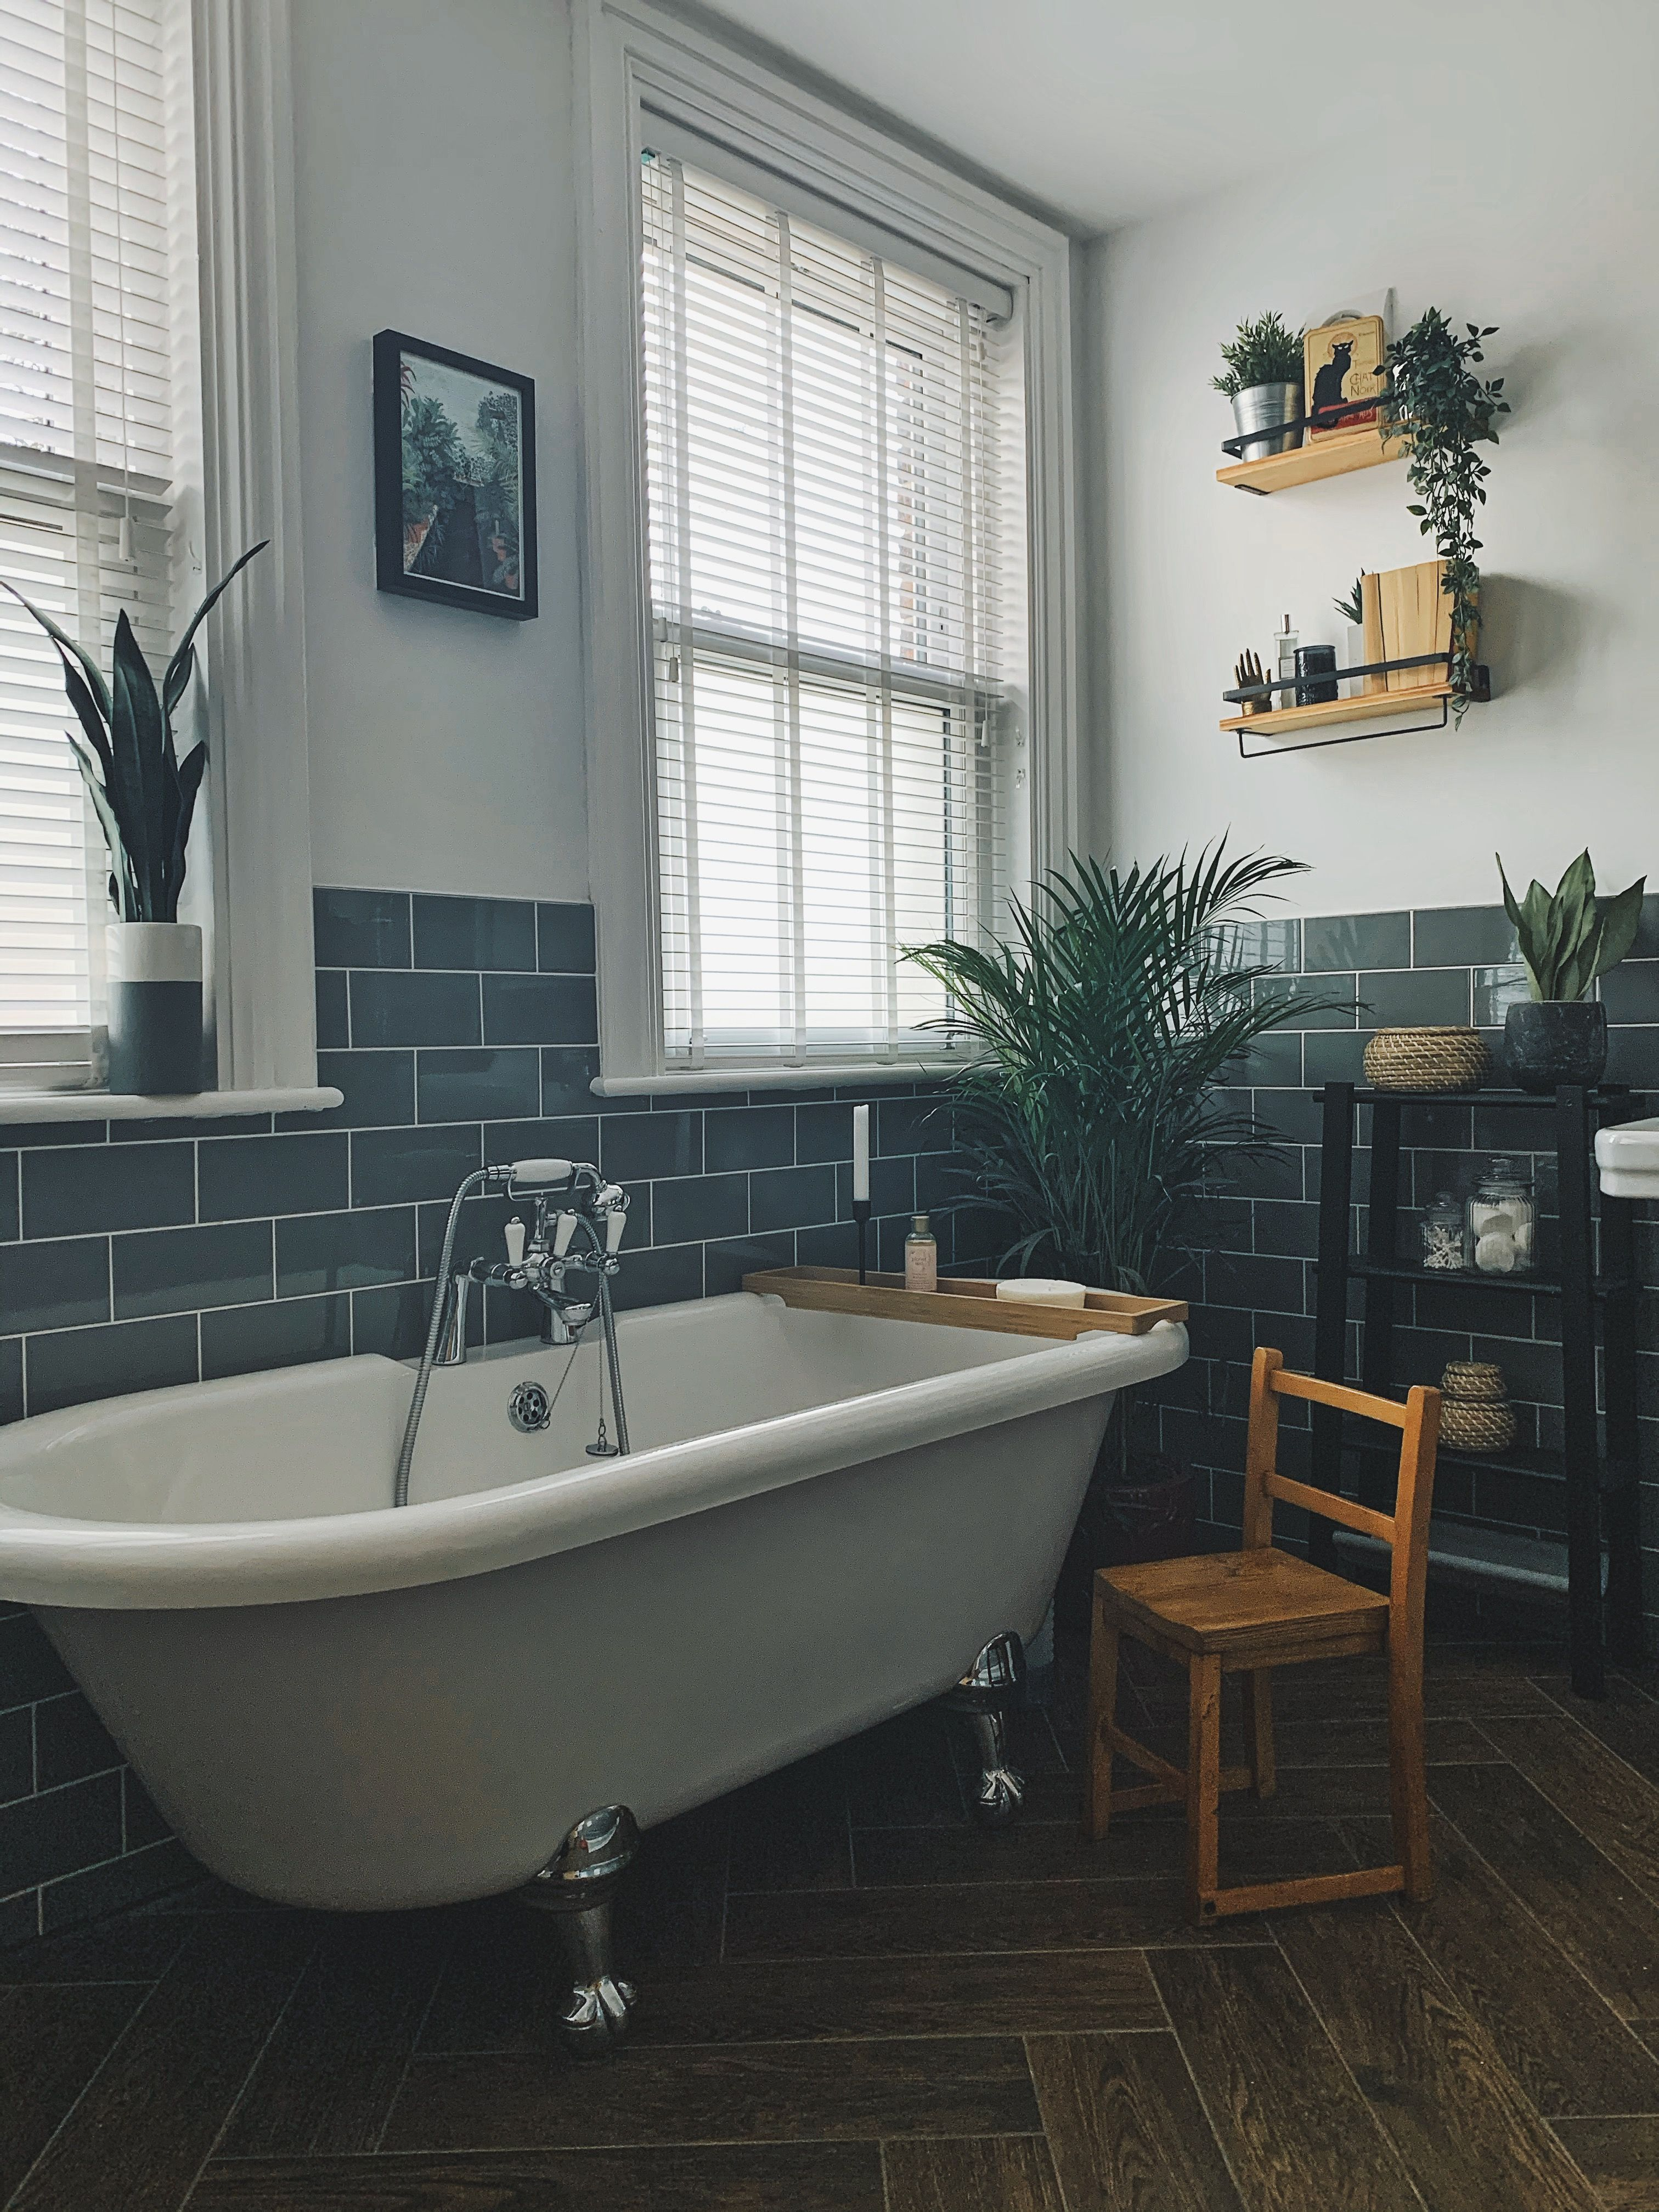 Period Bathroom In 2020 Brick Tiles Bathroom White Tile Floor Brick Bathroom